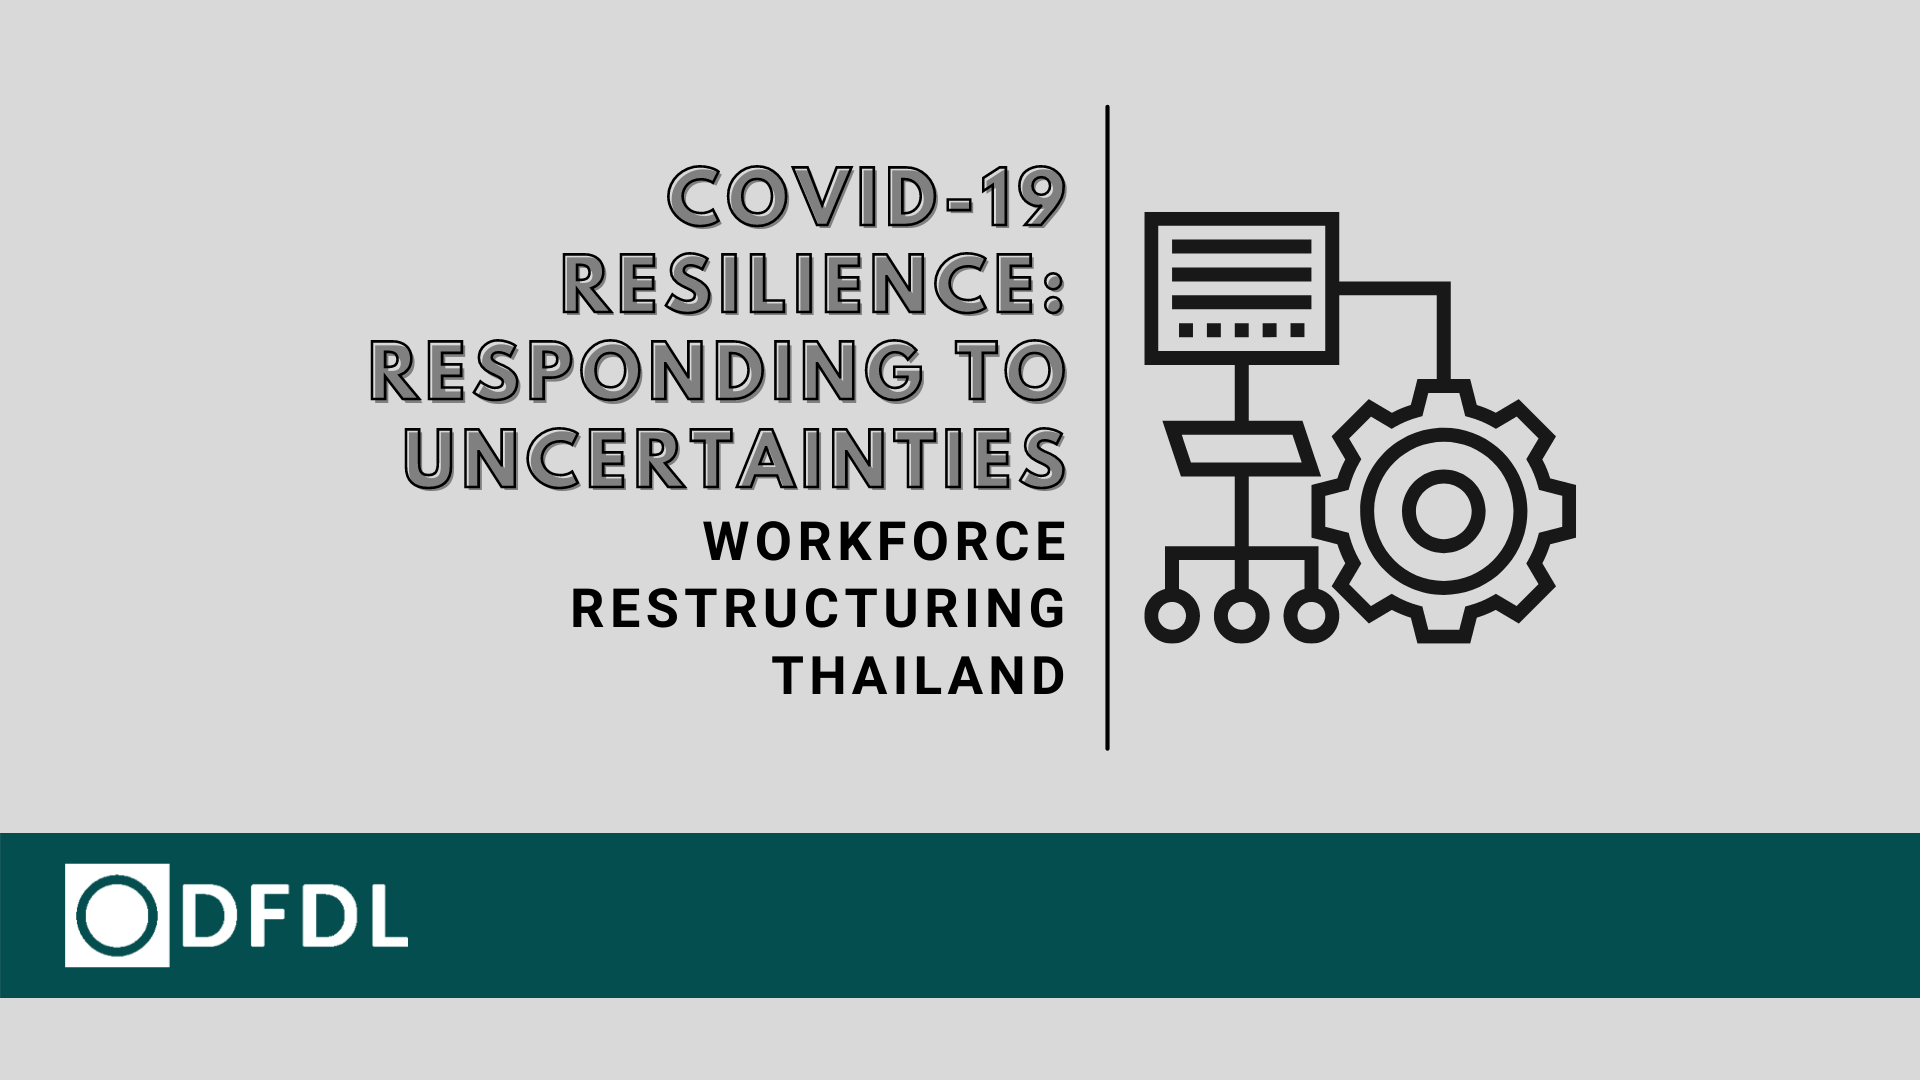 Workforce Restructuring – COVID19 Resilience: Responding to Uncertainties in Thailand